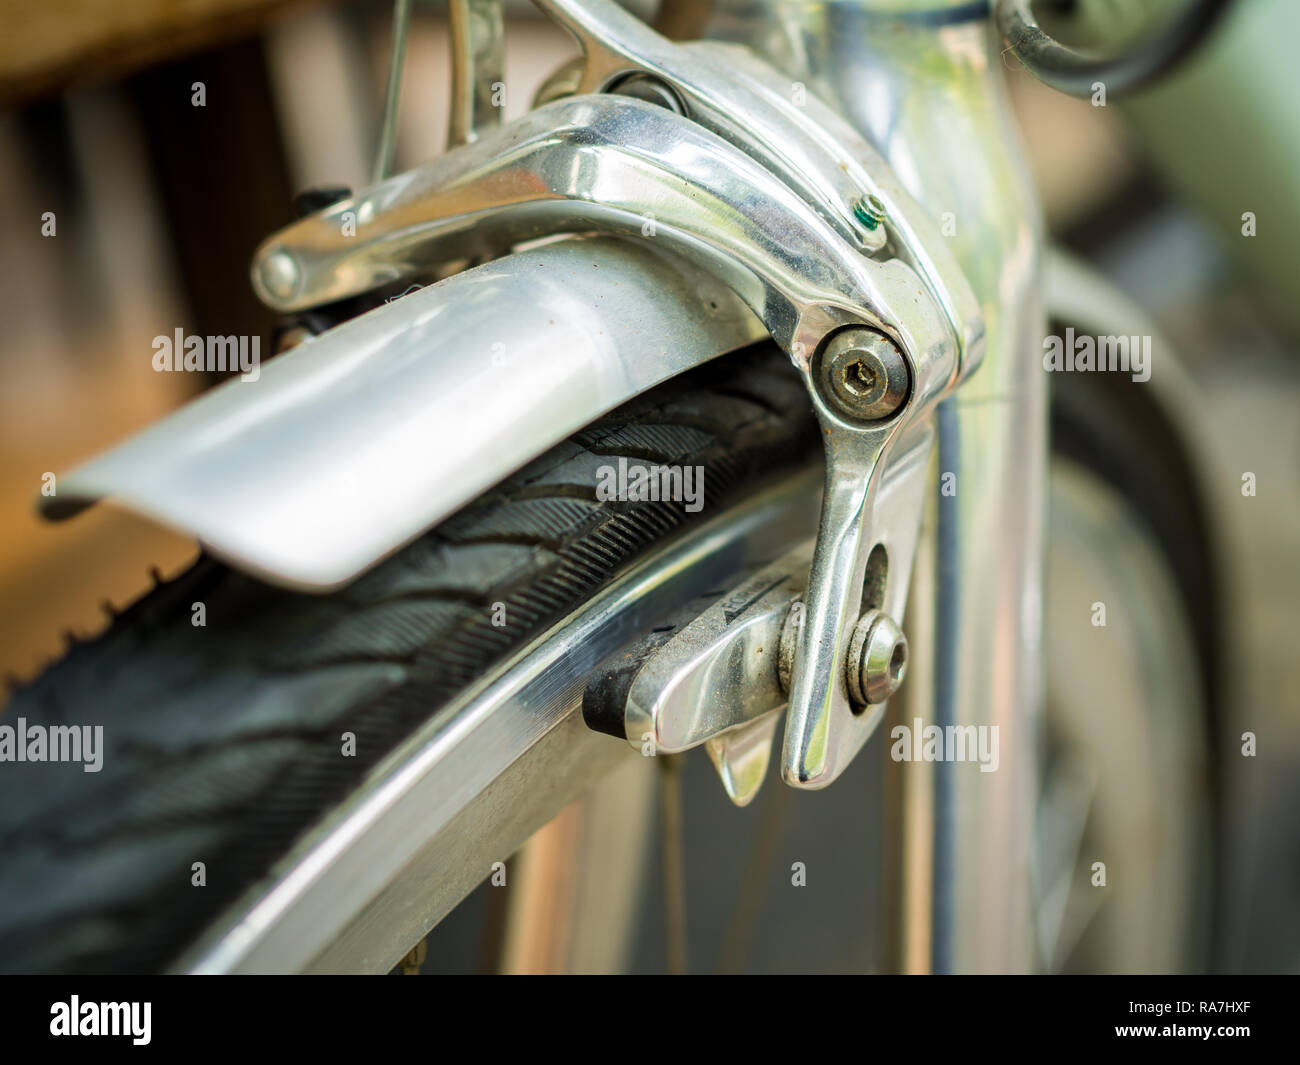 Close-up bicycle brakes and wheel on green vintage bicycle Stock